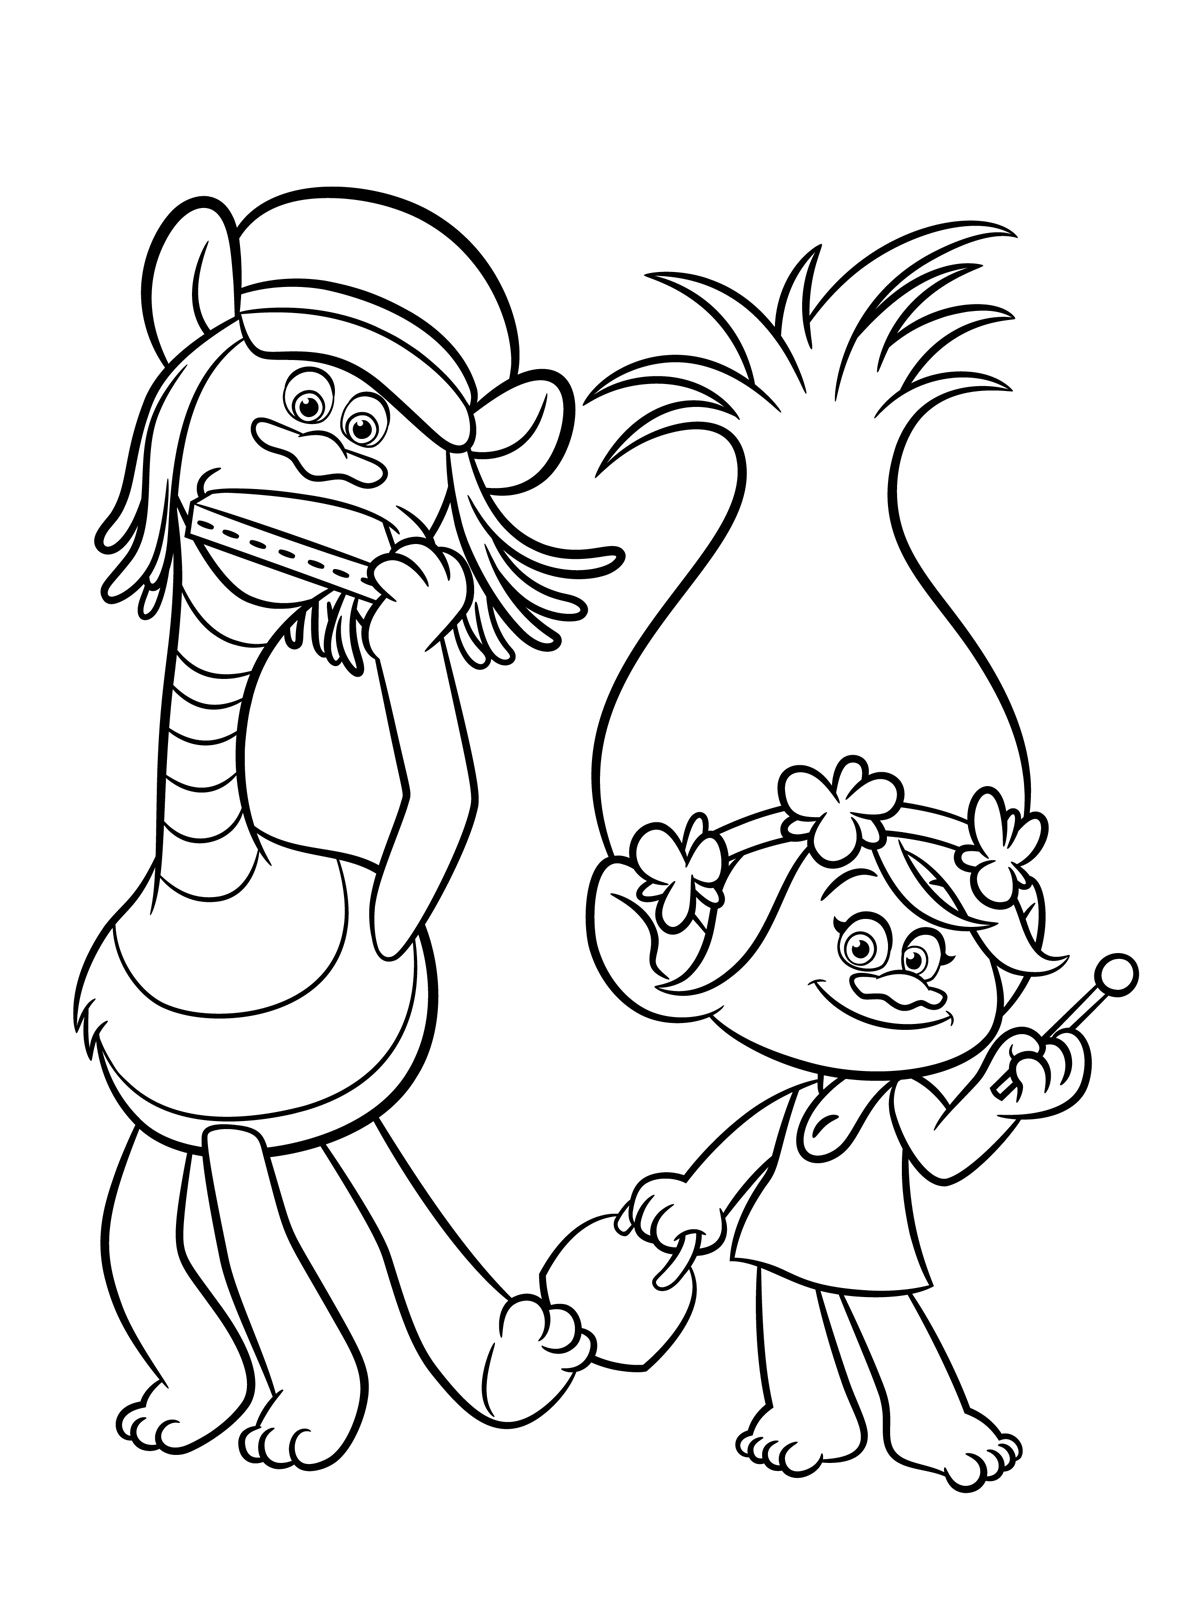 coloring for kids disney coloring pages winnie the pooh kids online world blog kids disney for coloring